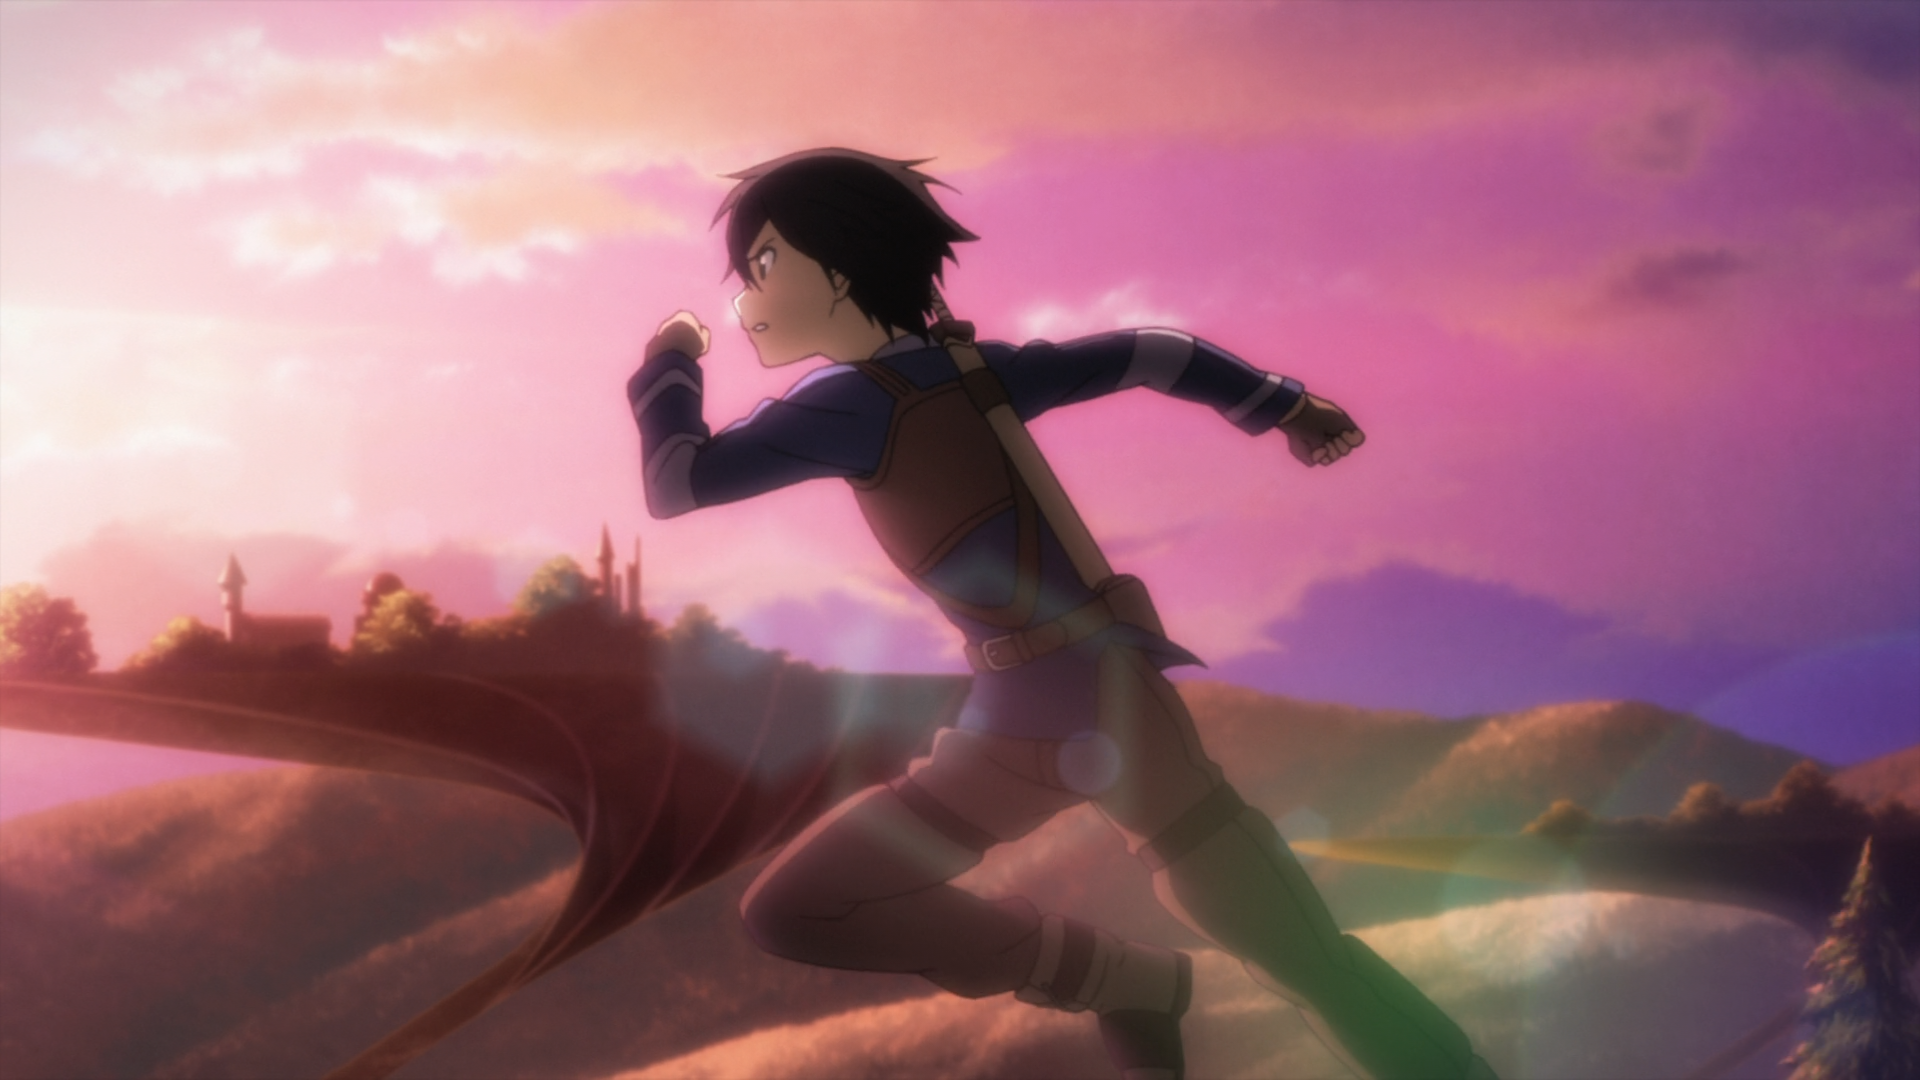 https://vignette4.wikia.nocookie.net/swordartonline/images/e/e6/Kirito_runs_to_the_next_town.png/revision/latest?cb=20130622011133